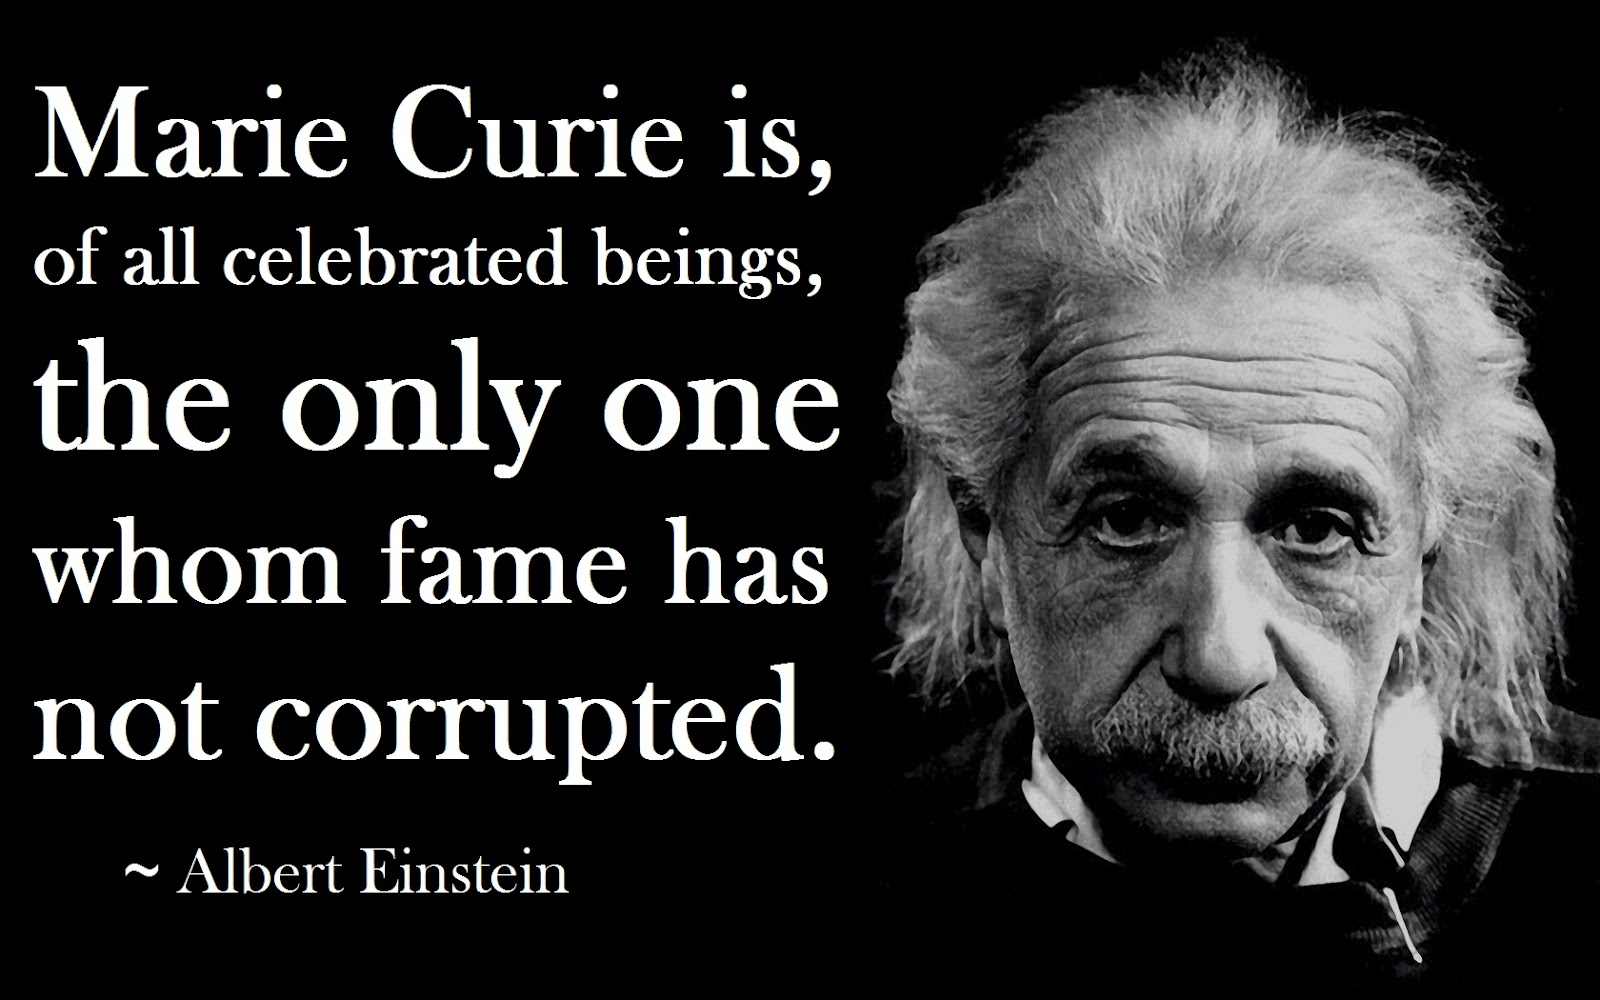 Marie Curie's quote #4